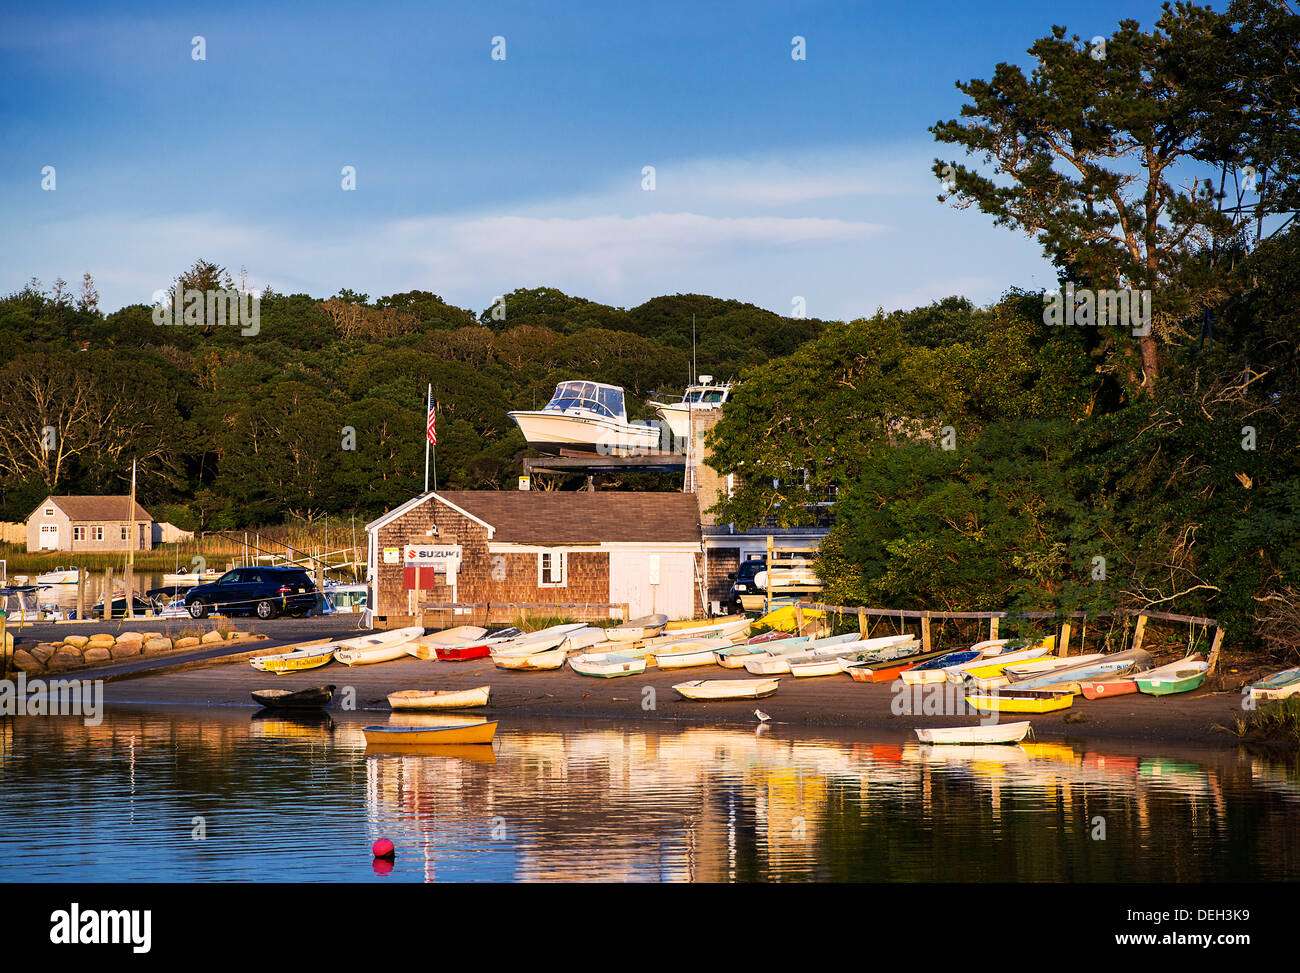 Ryders Cove Boat Yard Chatham Cape Cod Massachusetts